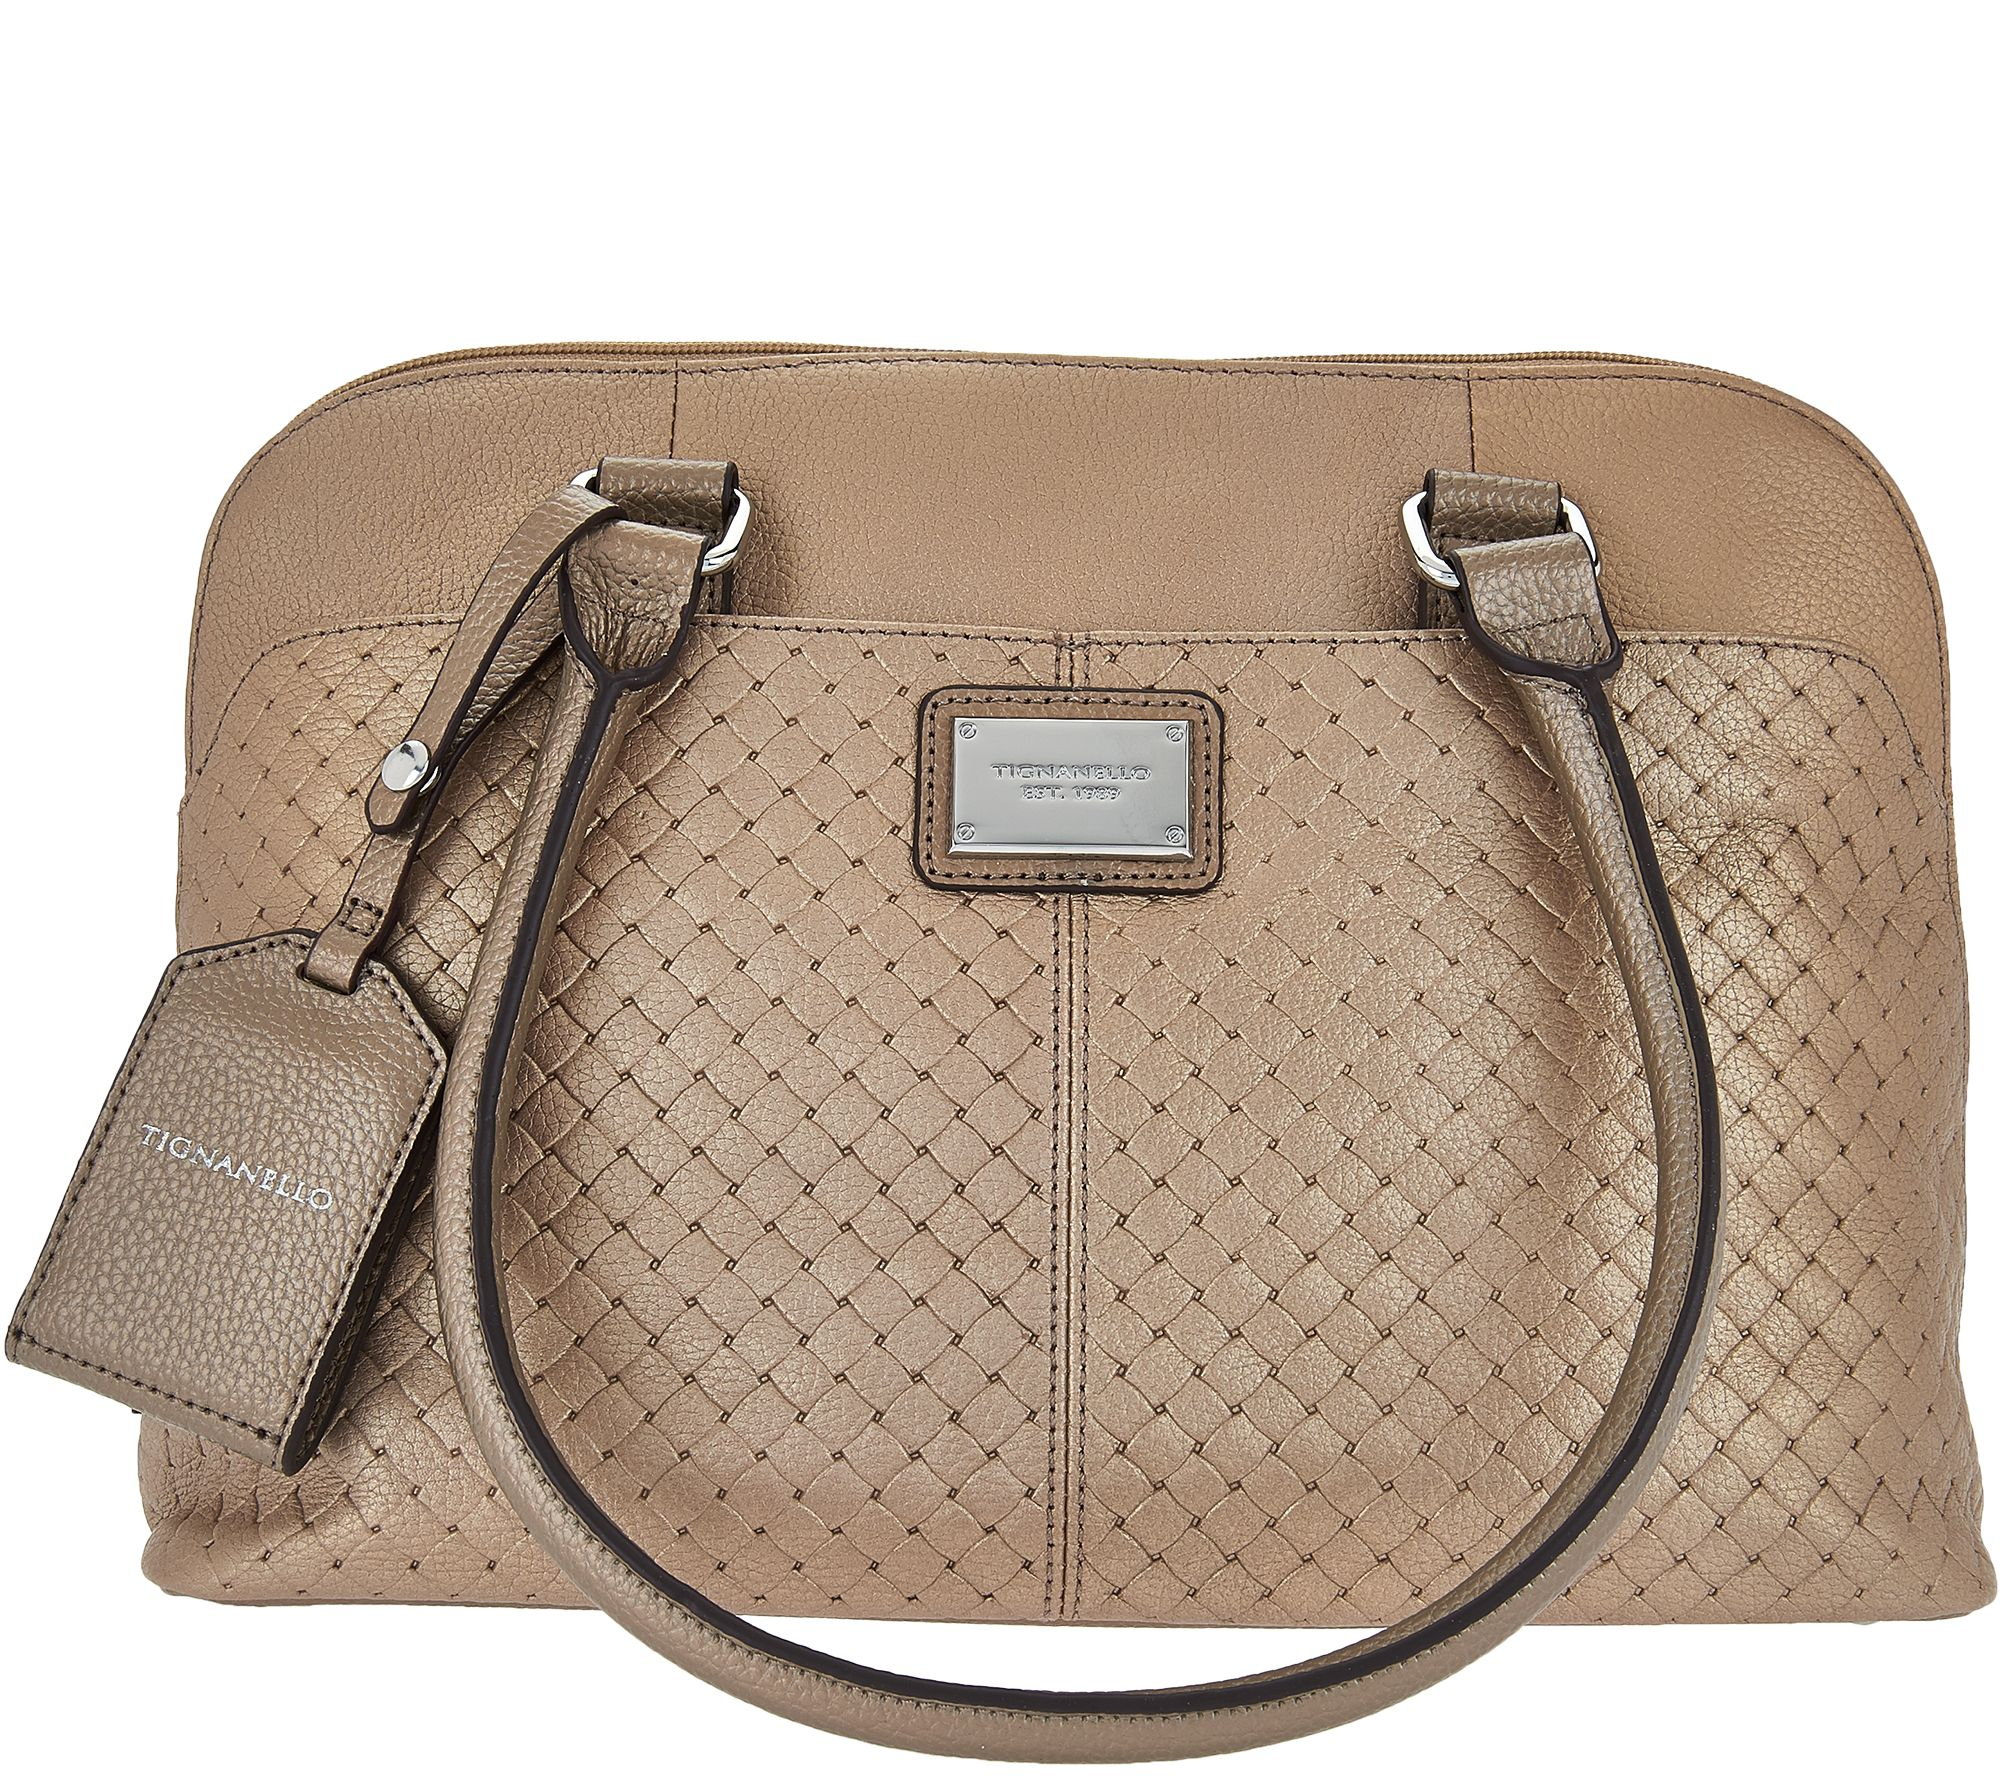 8ef79a6196 Tignanello Pebble Leather Woven Embossed RFID Domed Satchel - Page 1 —  QVC.com